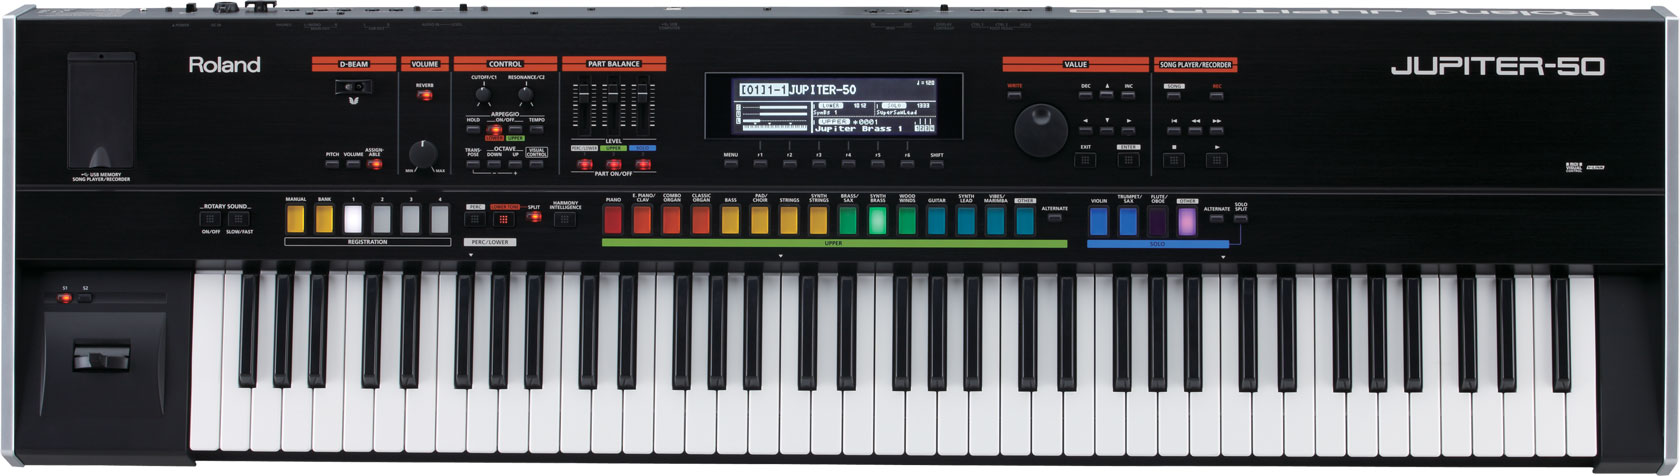 JUPITER-50 | Synthesizer - Roland